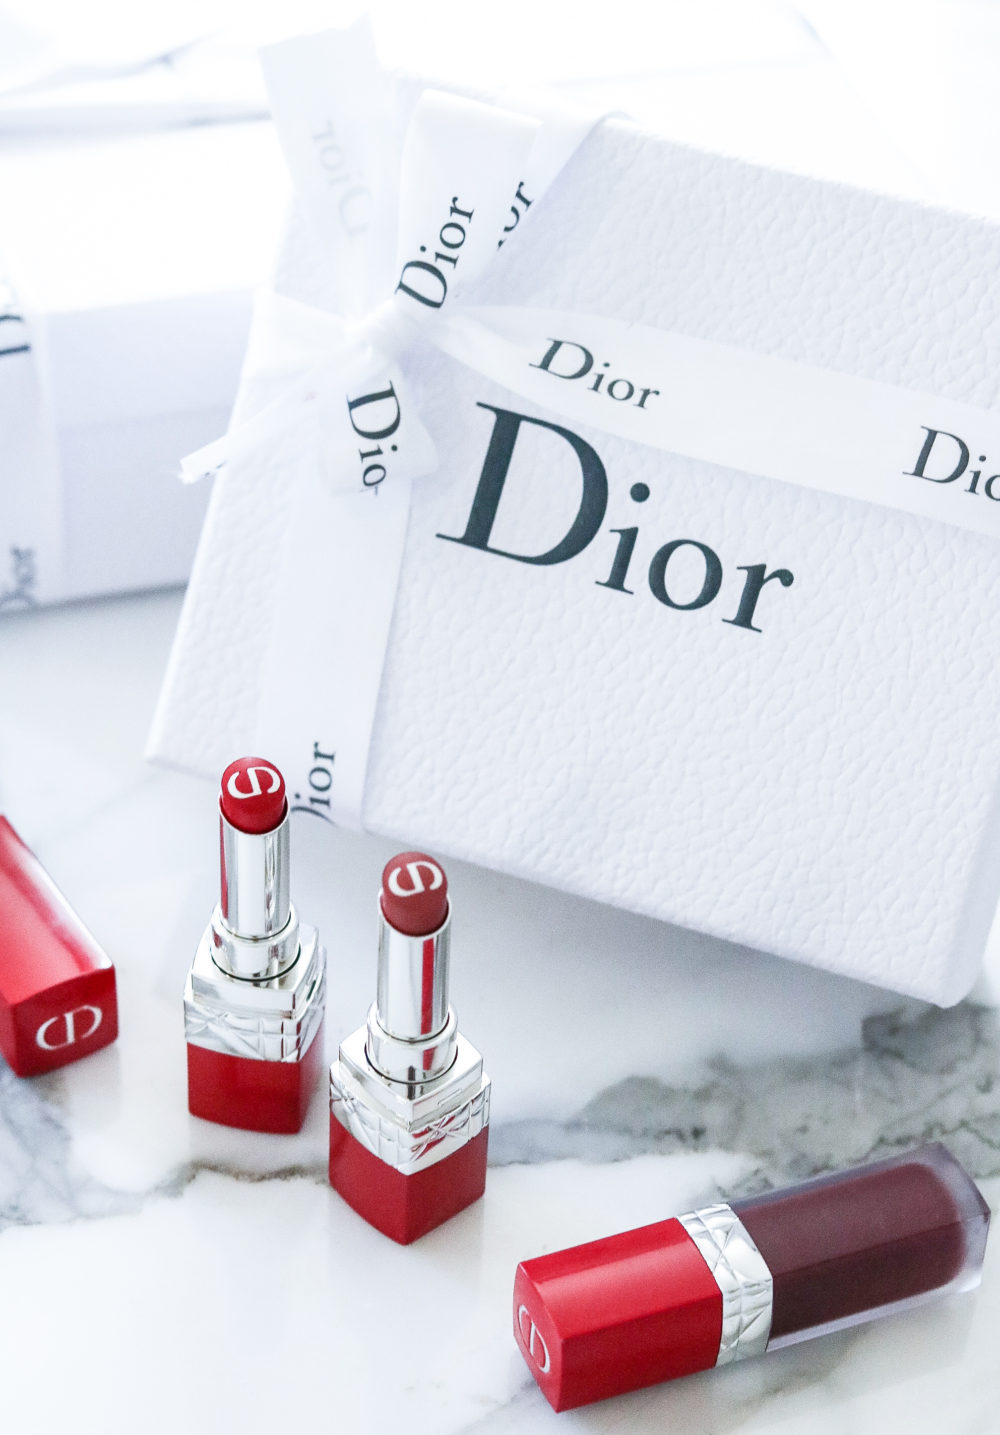 Dior Ultra Care Lipsticks I Luxury Makeup Blog DreaminLace.co